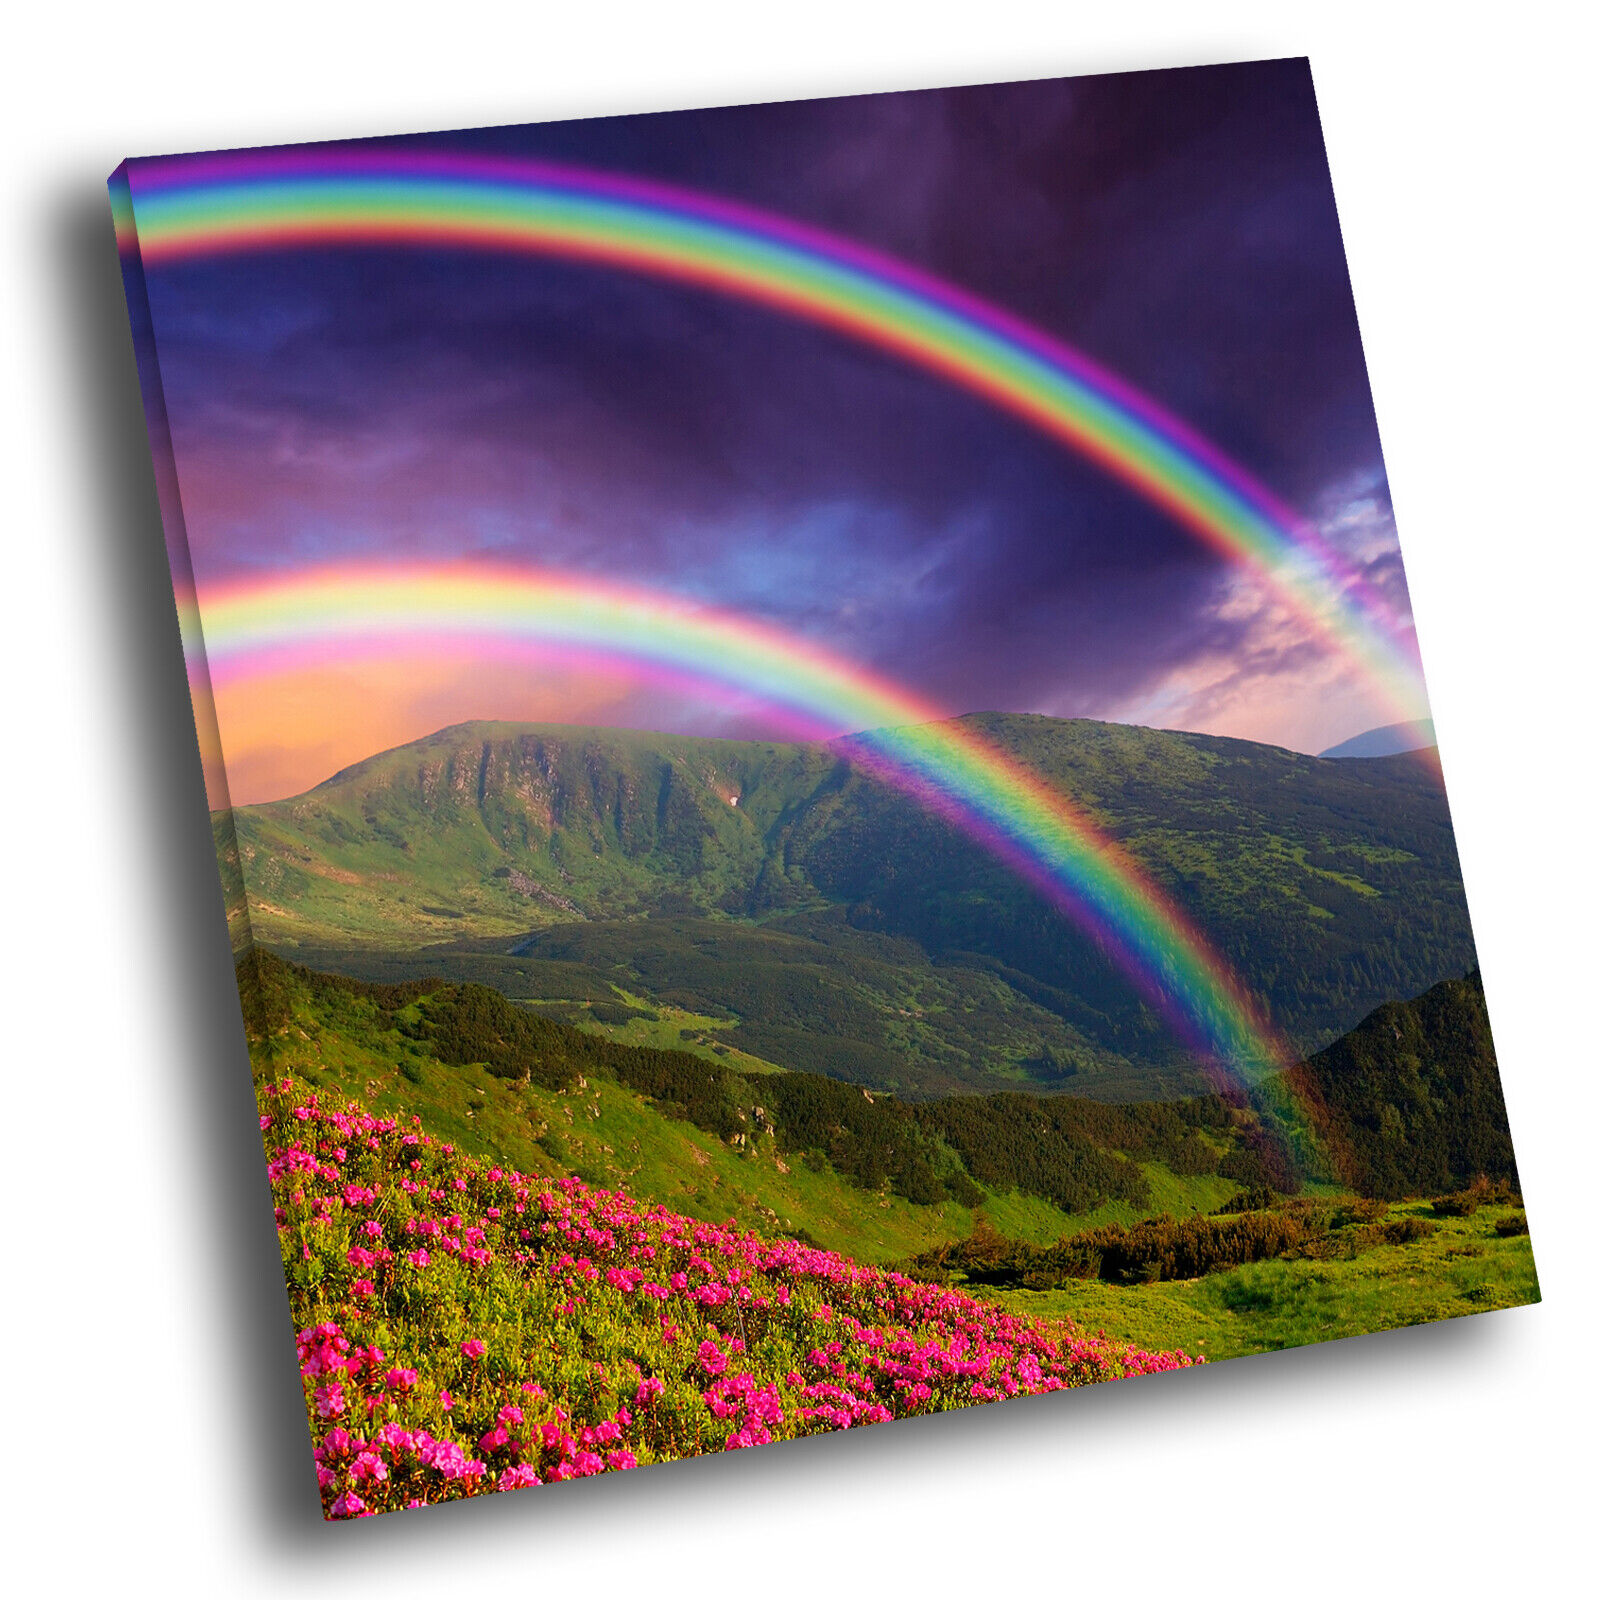 Colourful Rainbow Hill Cool Square Scenic Canvas Wall Art Large Picture Print